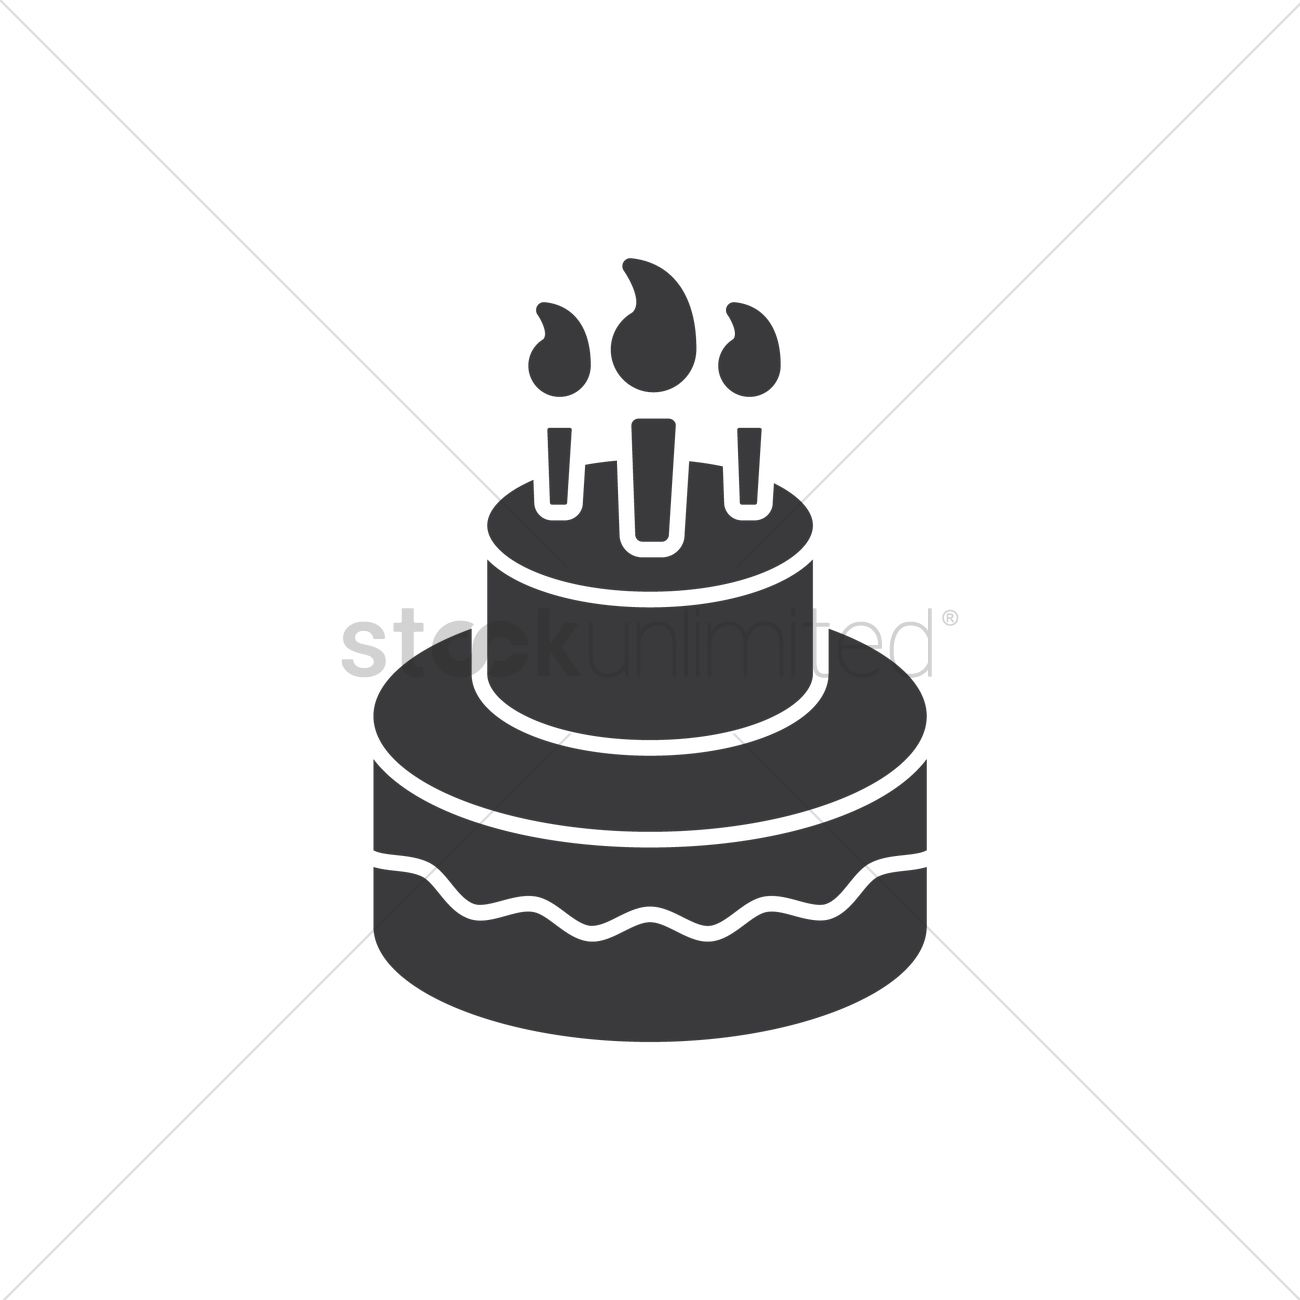 Birthday cake Vector Image - 1973408 | StockUnlimited